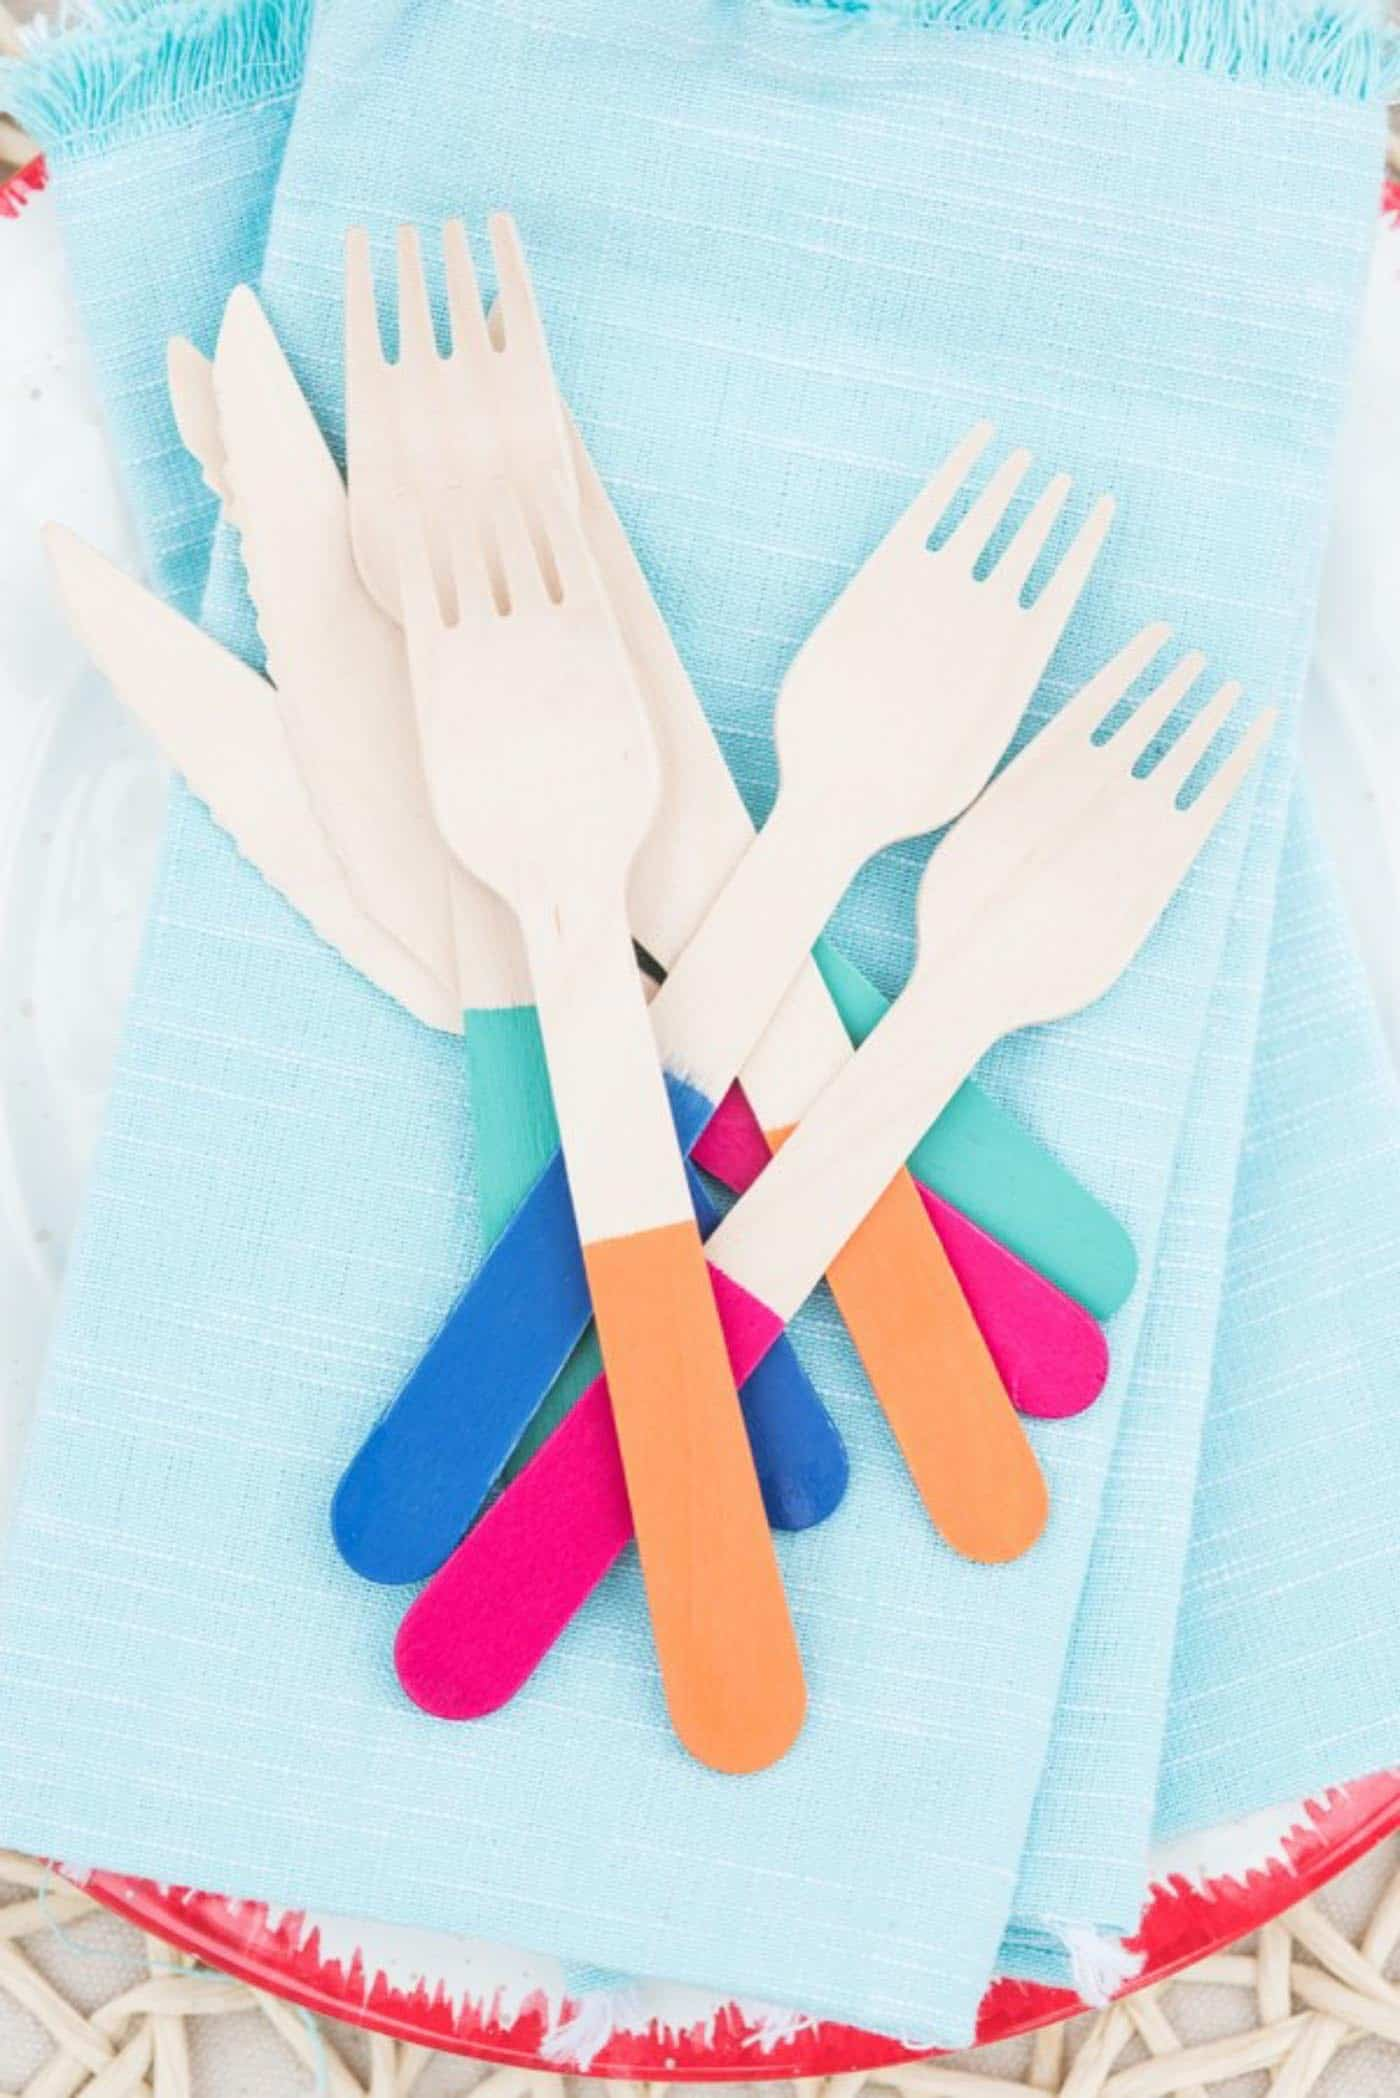 bamboo flatware, essentials for a summer picnic - My Style Vita @mystylevita